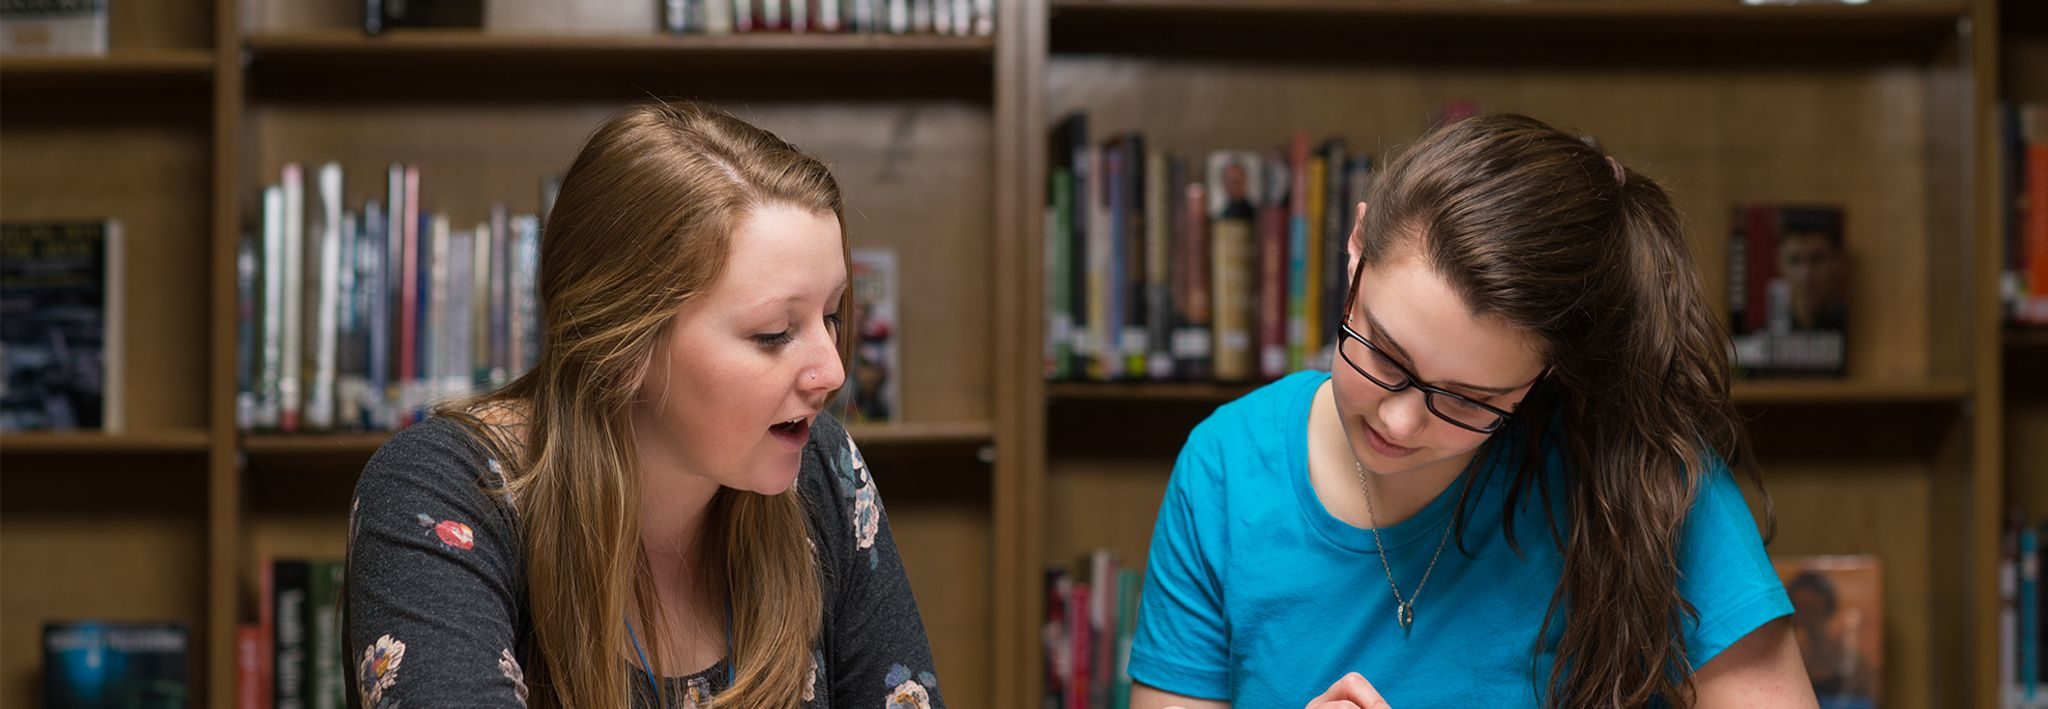 Students working on homework together in the CCU library.